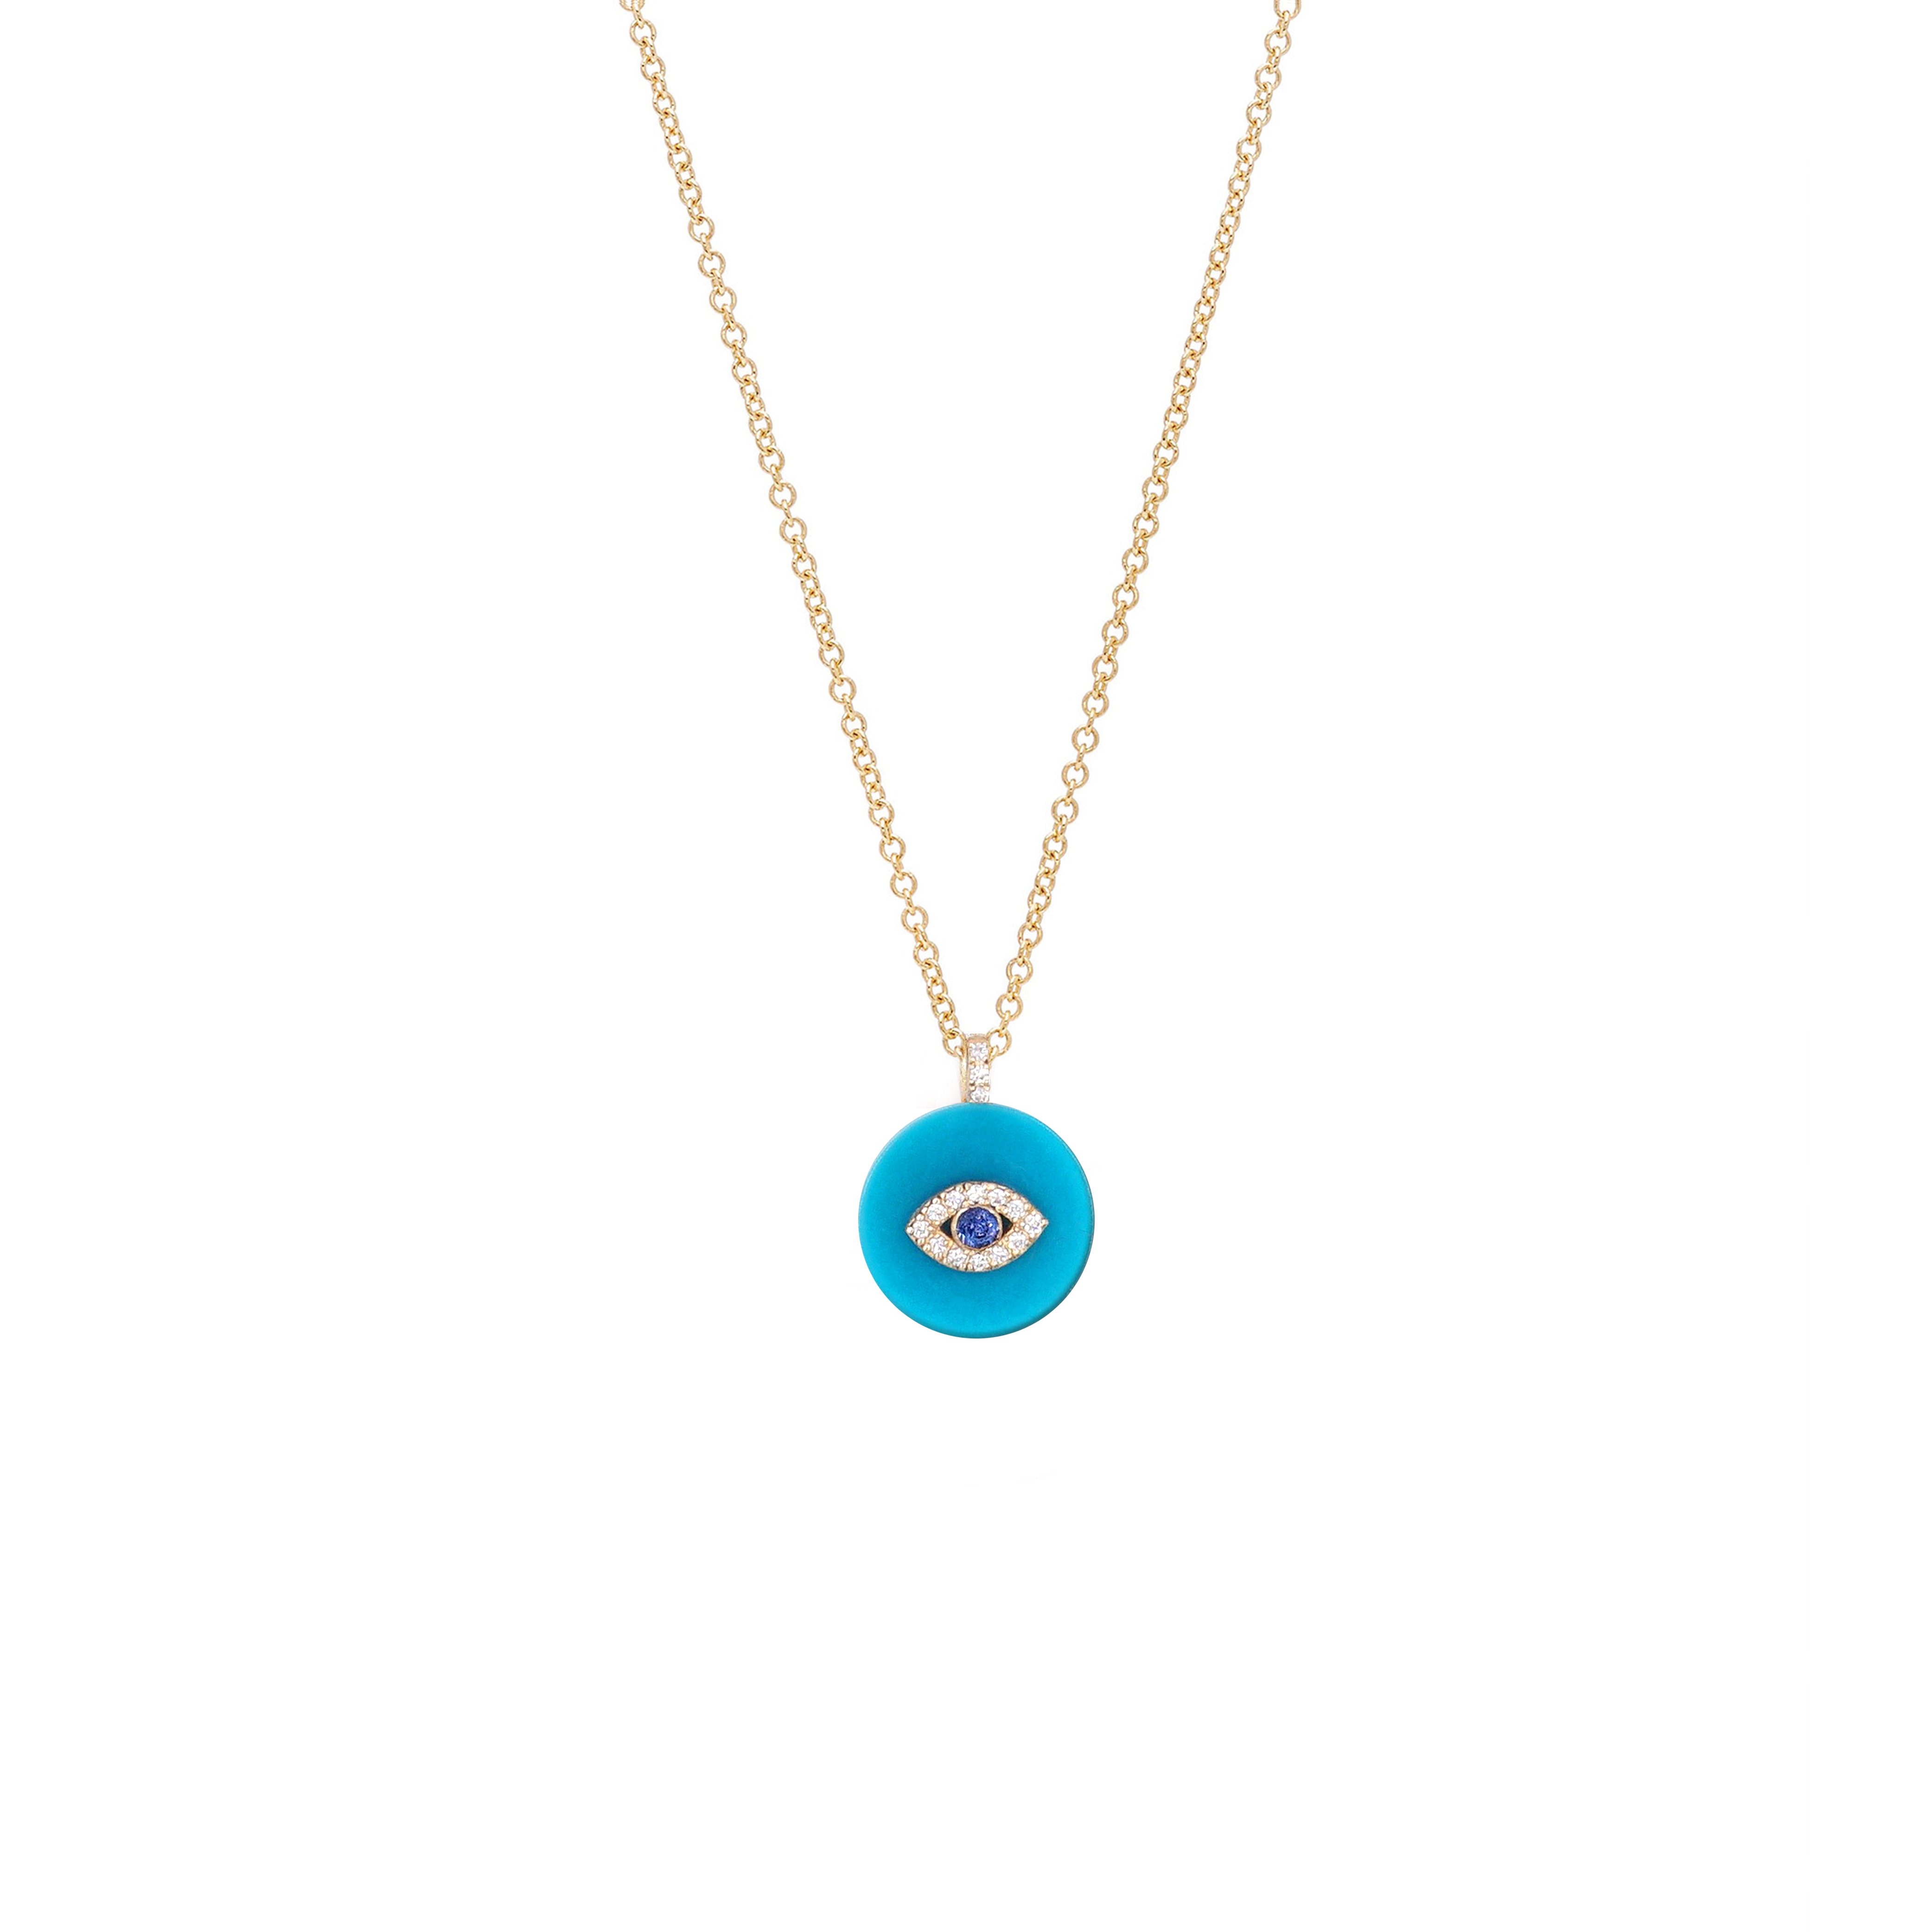 Co-exist - Eye of Evil on Gemstone   Names By Noush